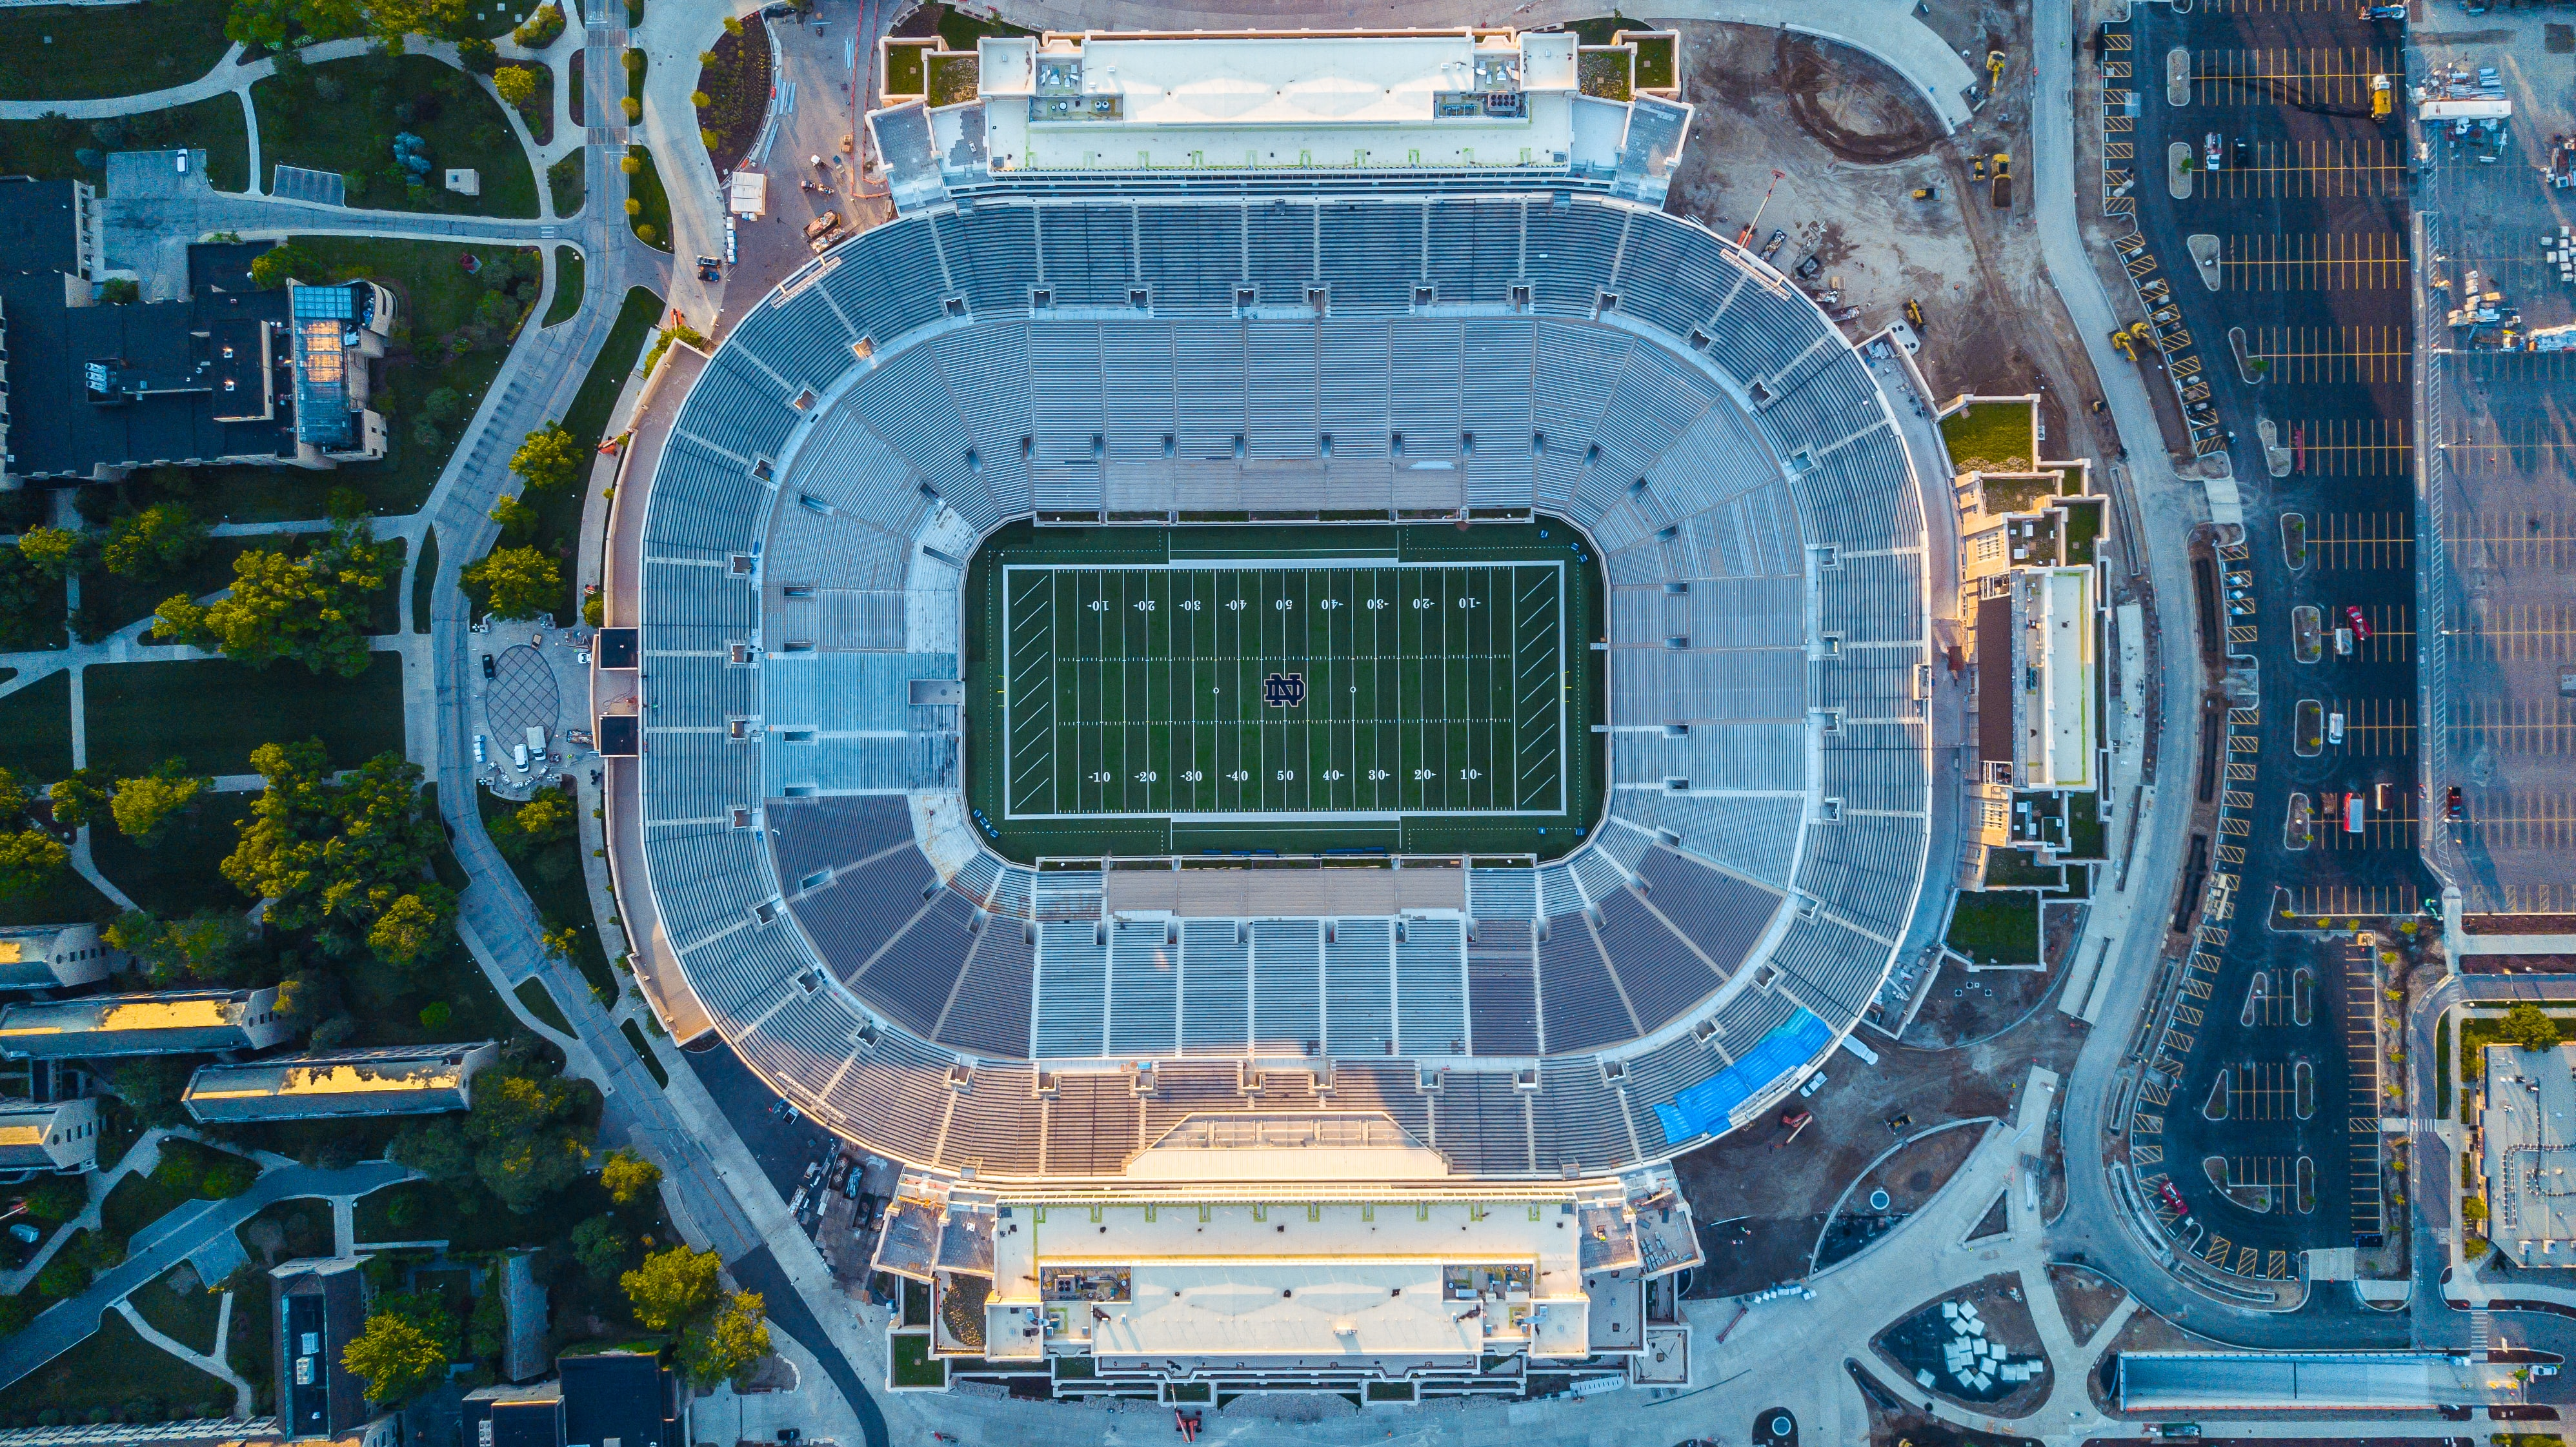 bird's eye photography of football field